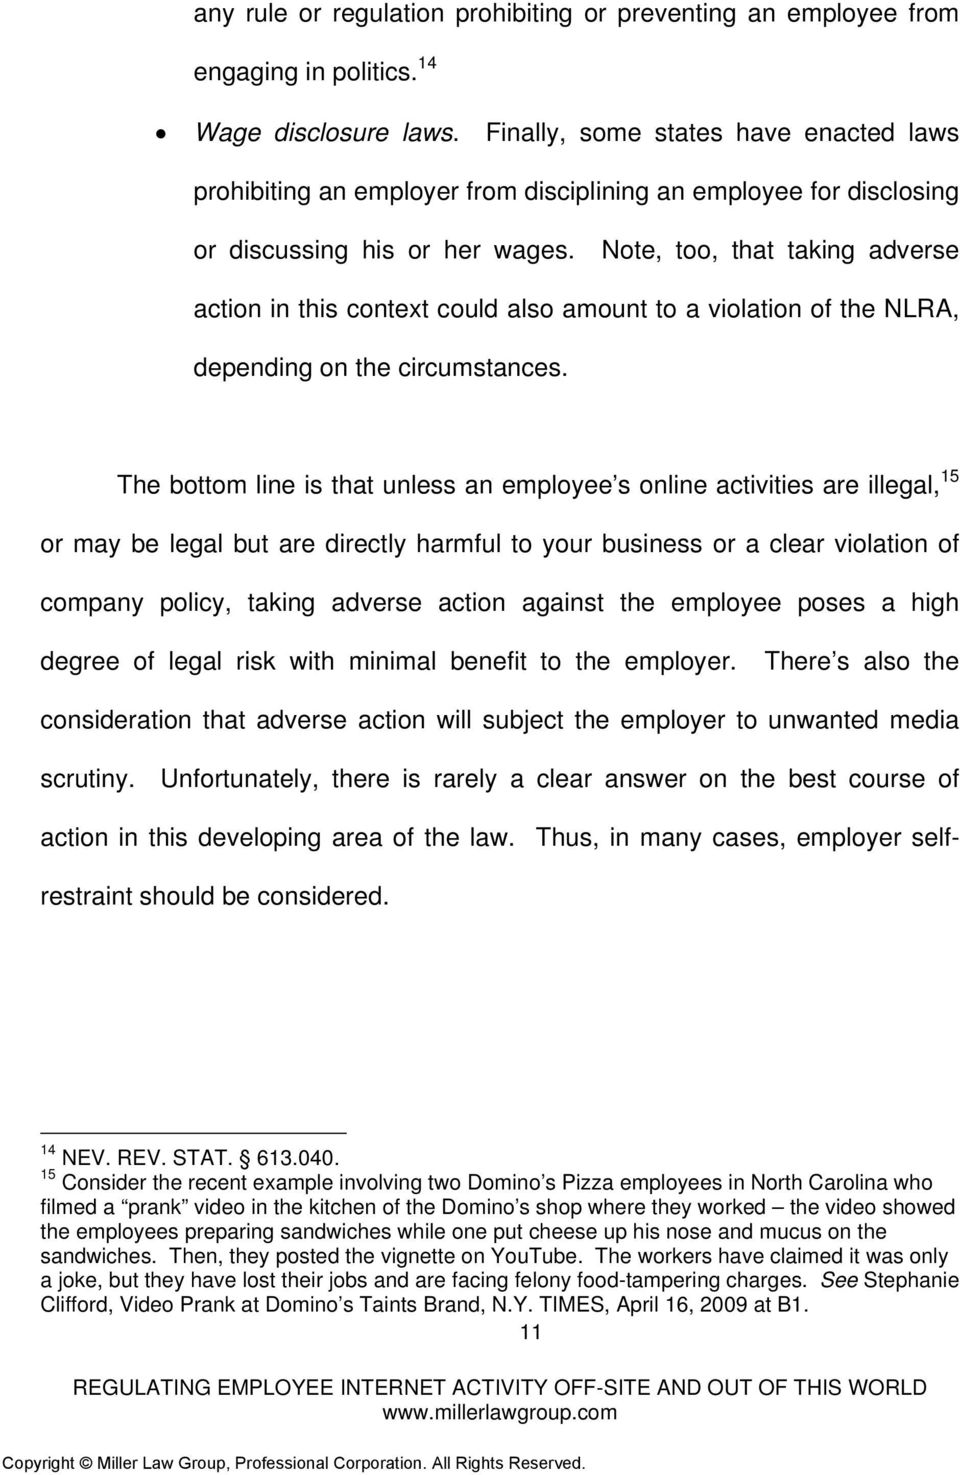 Note, too, that taking adverse action in this context could also amount to a violation of the NLRA, depending on the circumstances.